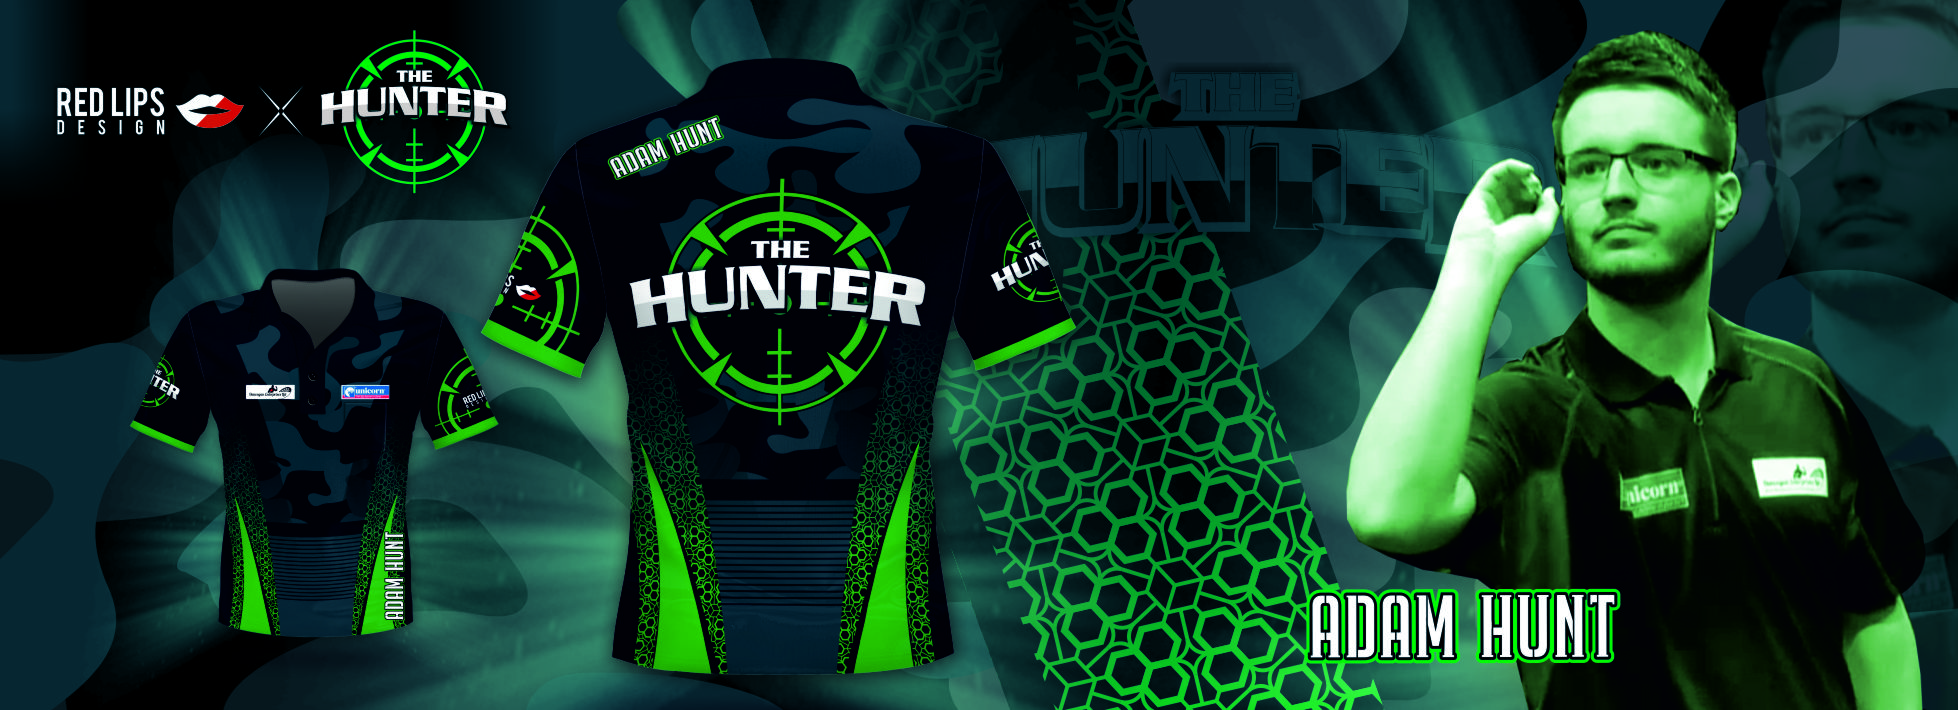 Adam Hunt shirt design